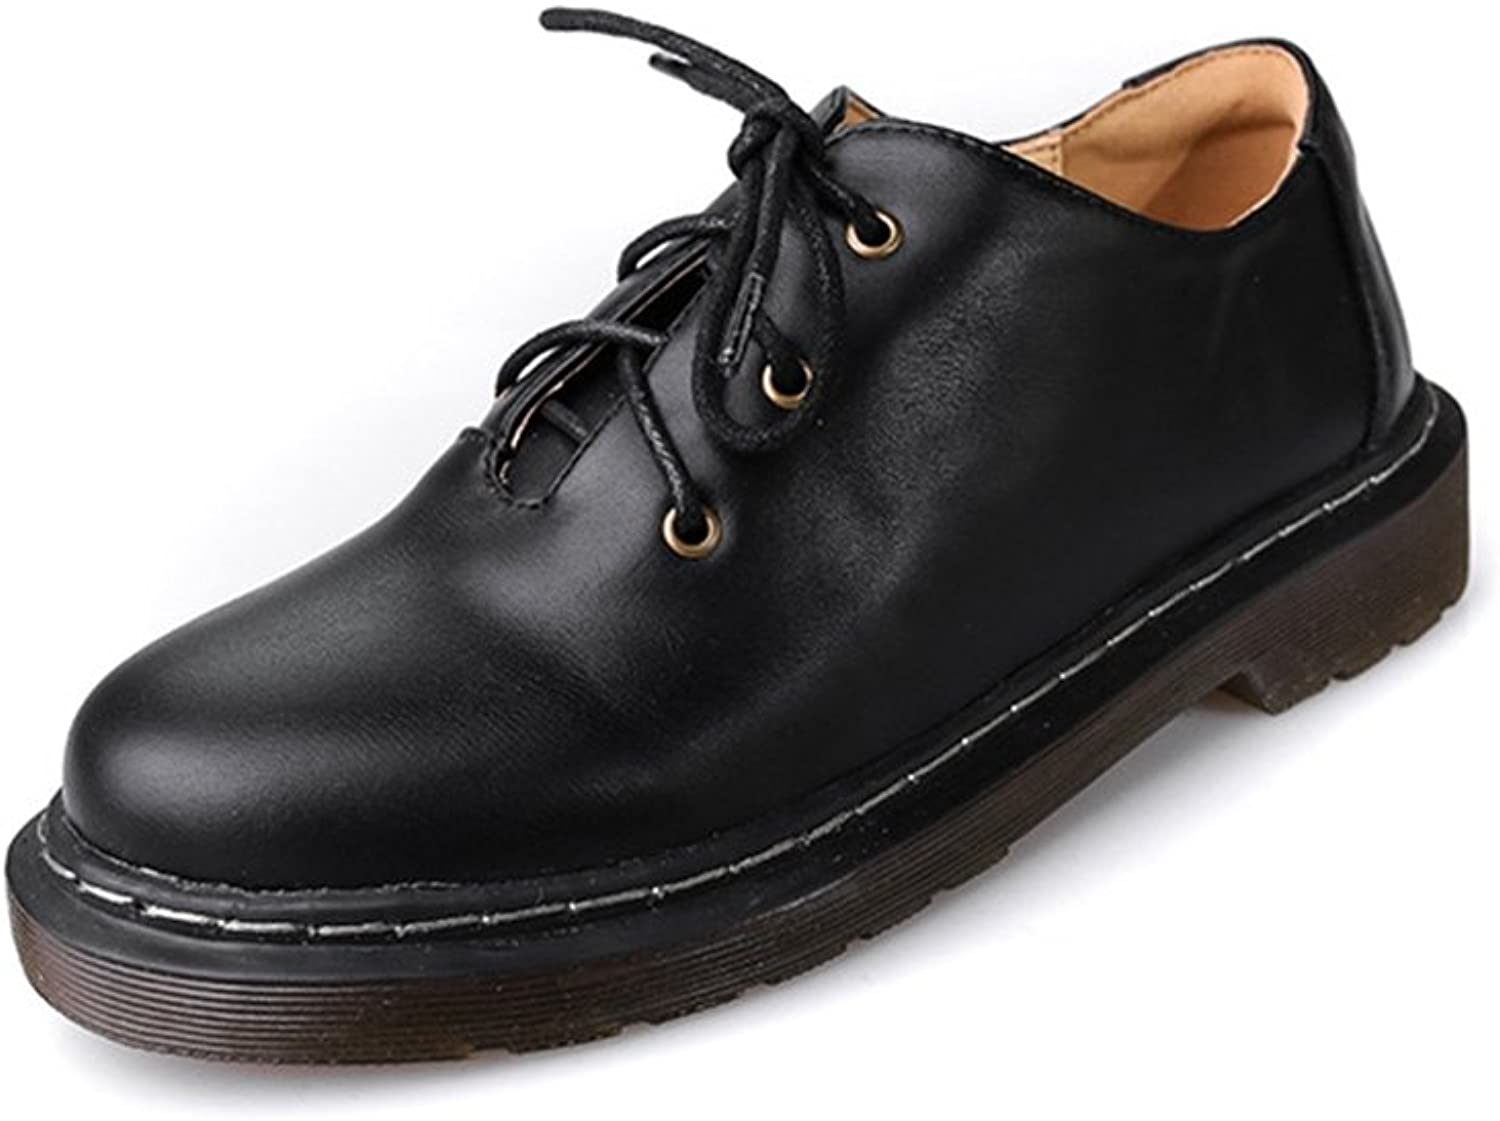 T-JULY Women's Vintage Oxfords shoes - Retro Lace-up Low Heel Round Toe Glossy shoes